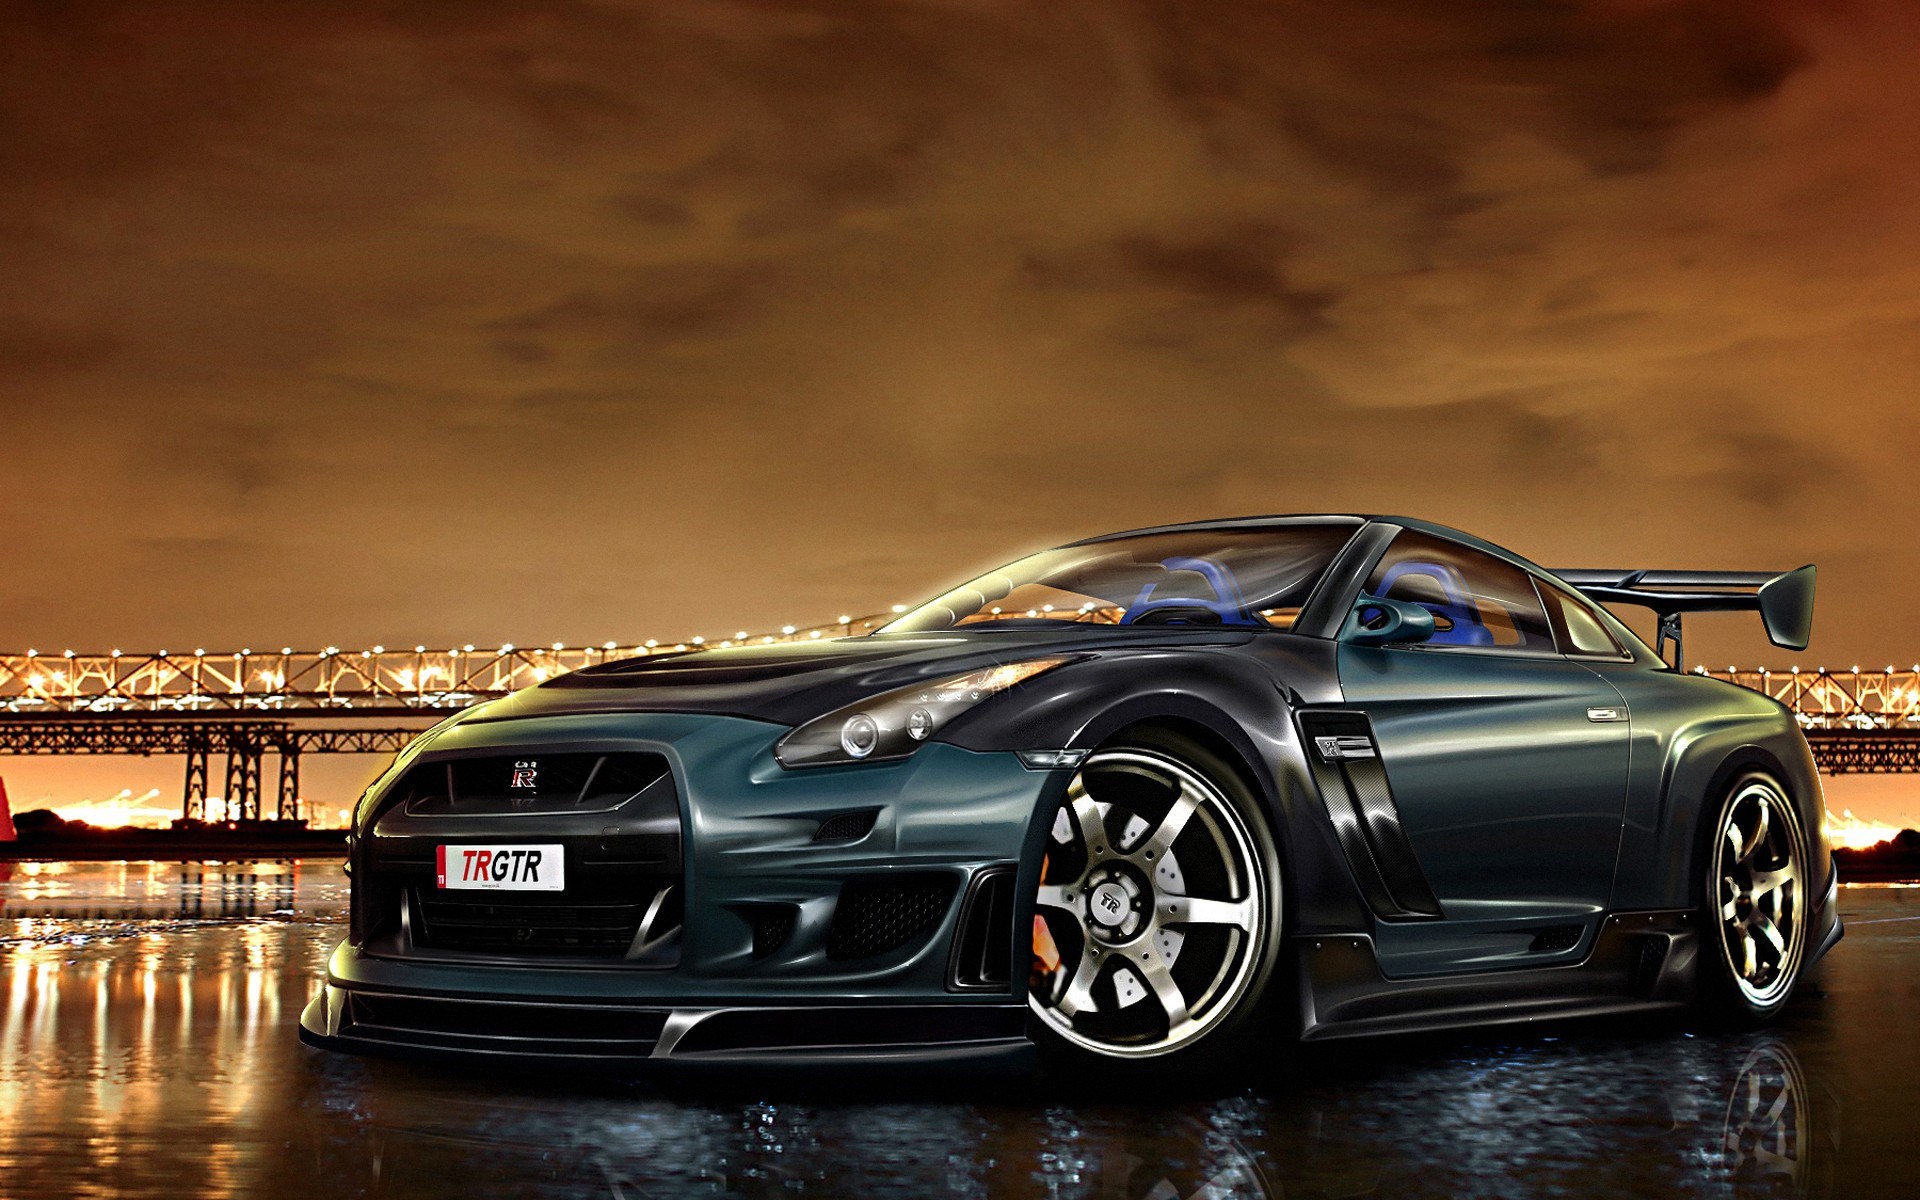 Awesome Quotes Hd Wallpaper Download Nissan Gtr R35 Wallpapers Pixelstalk Net